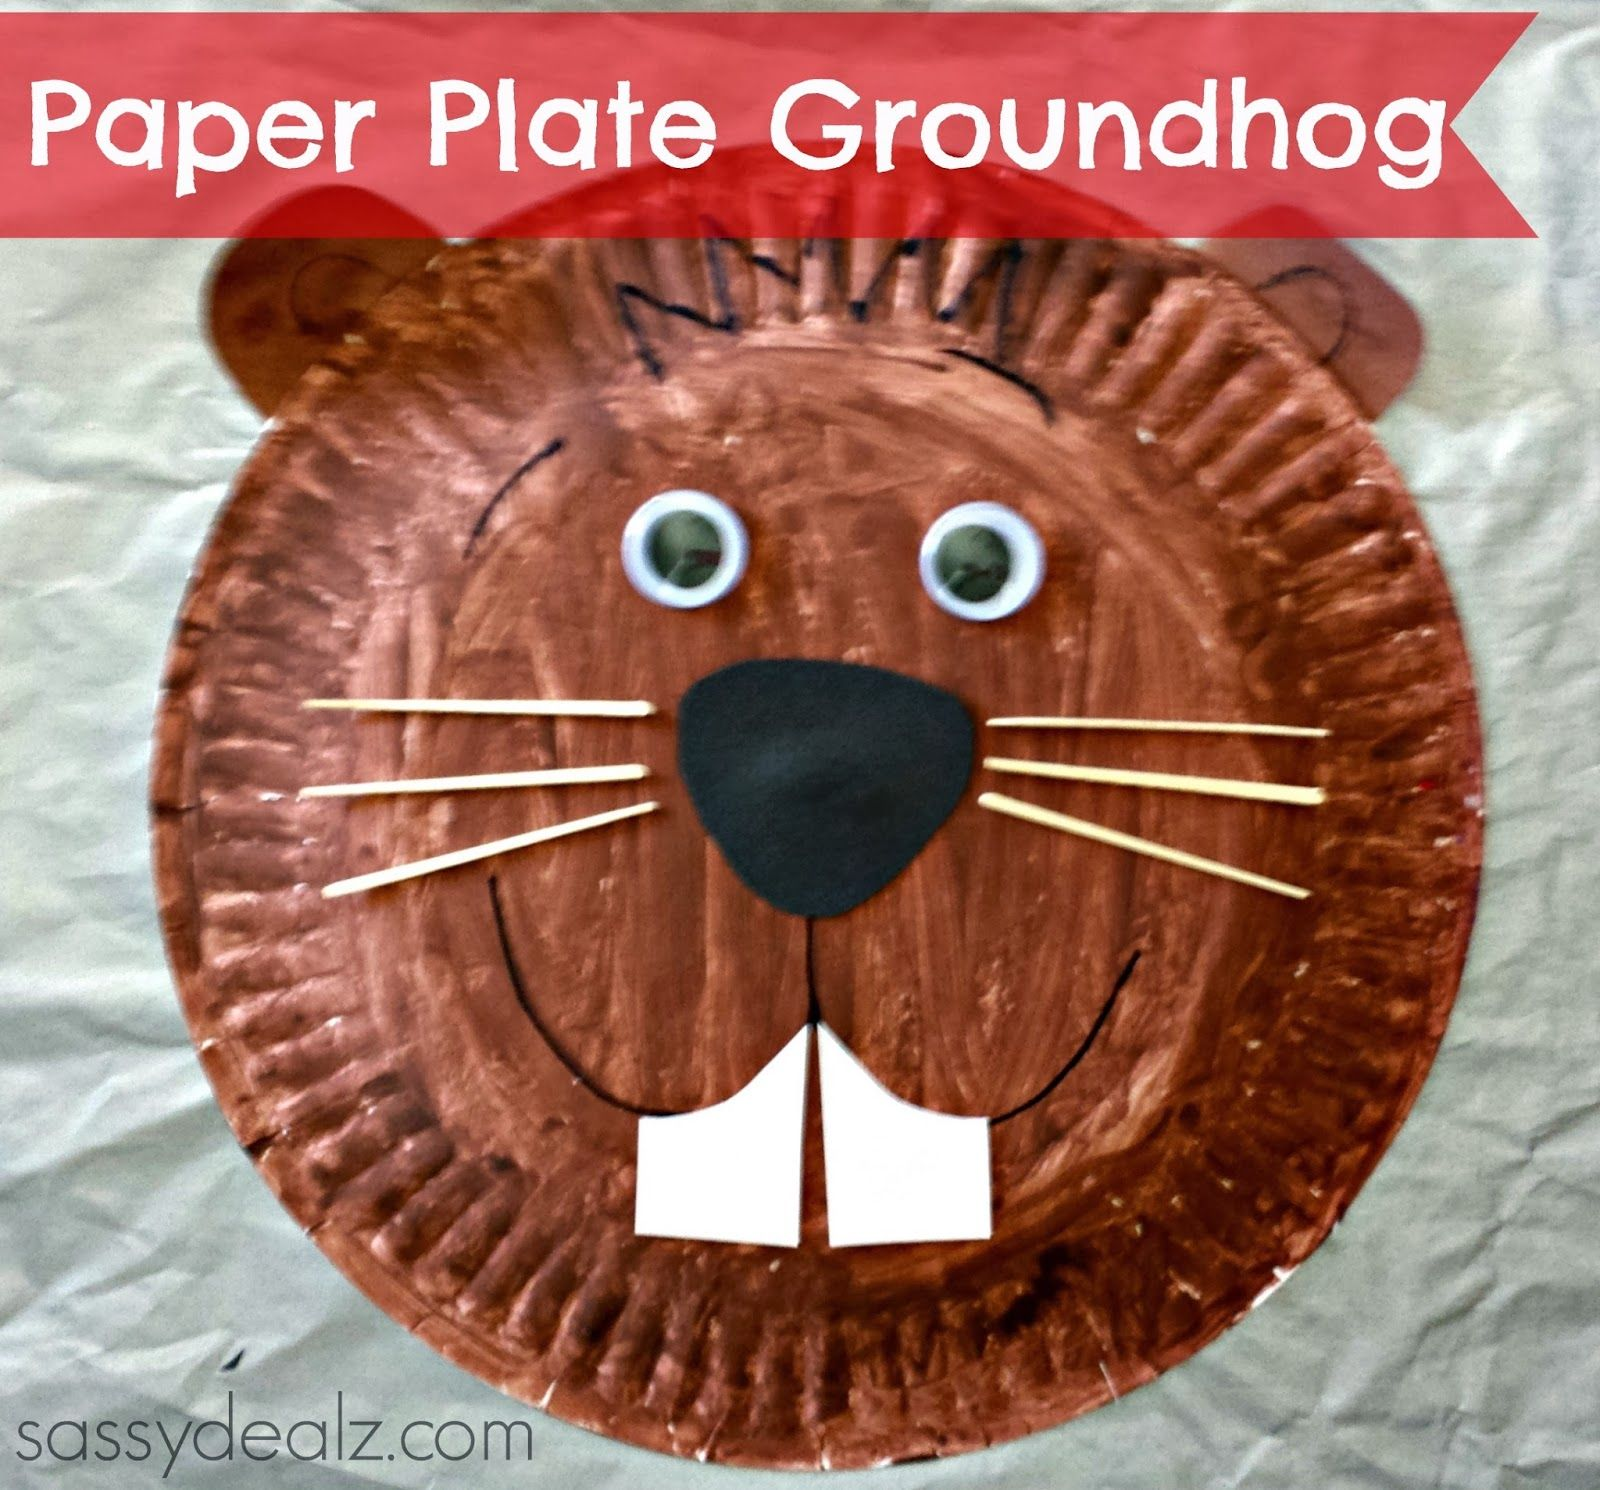 Groundhog paper plate craft for kids groundhogs day art for Groundhog day crafts for preschoolers